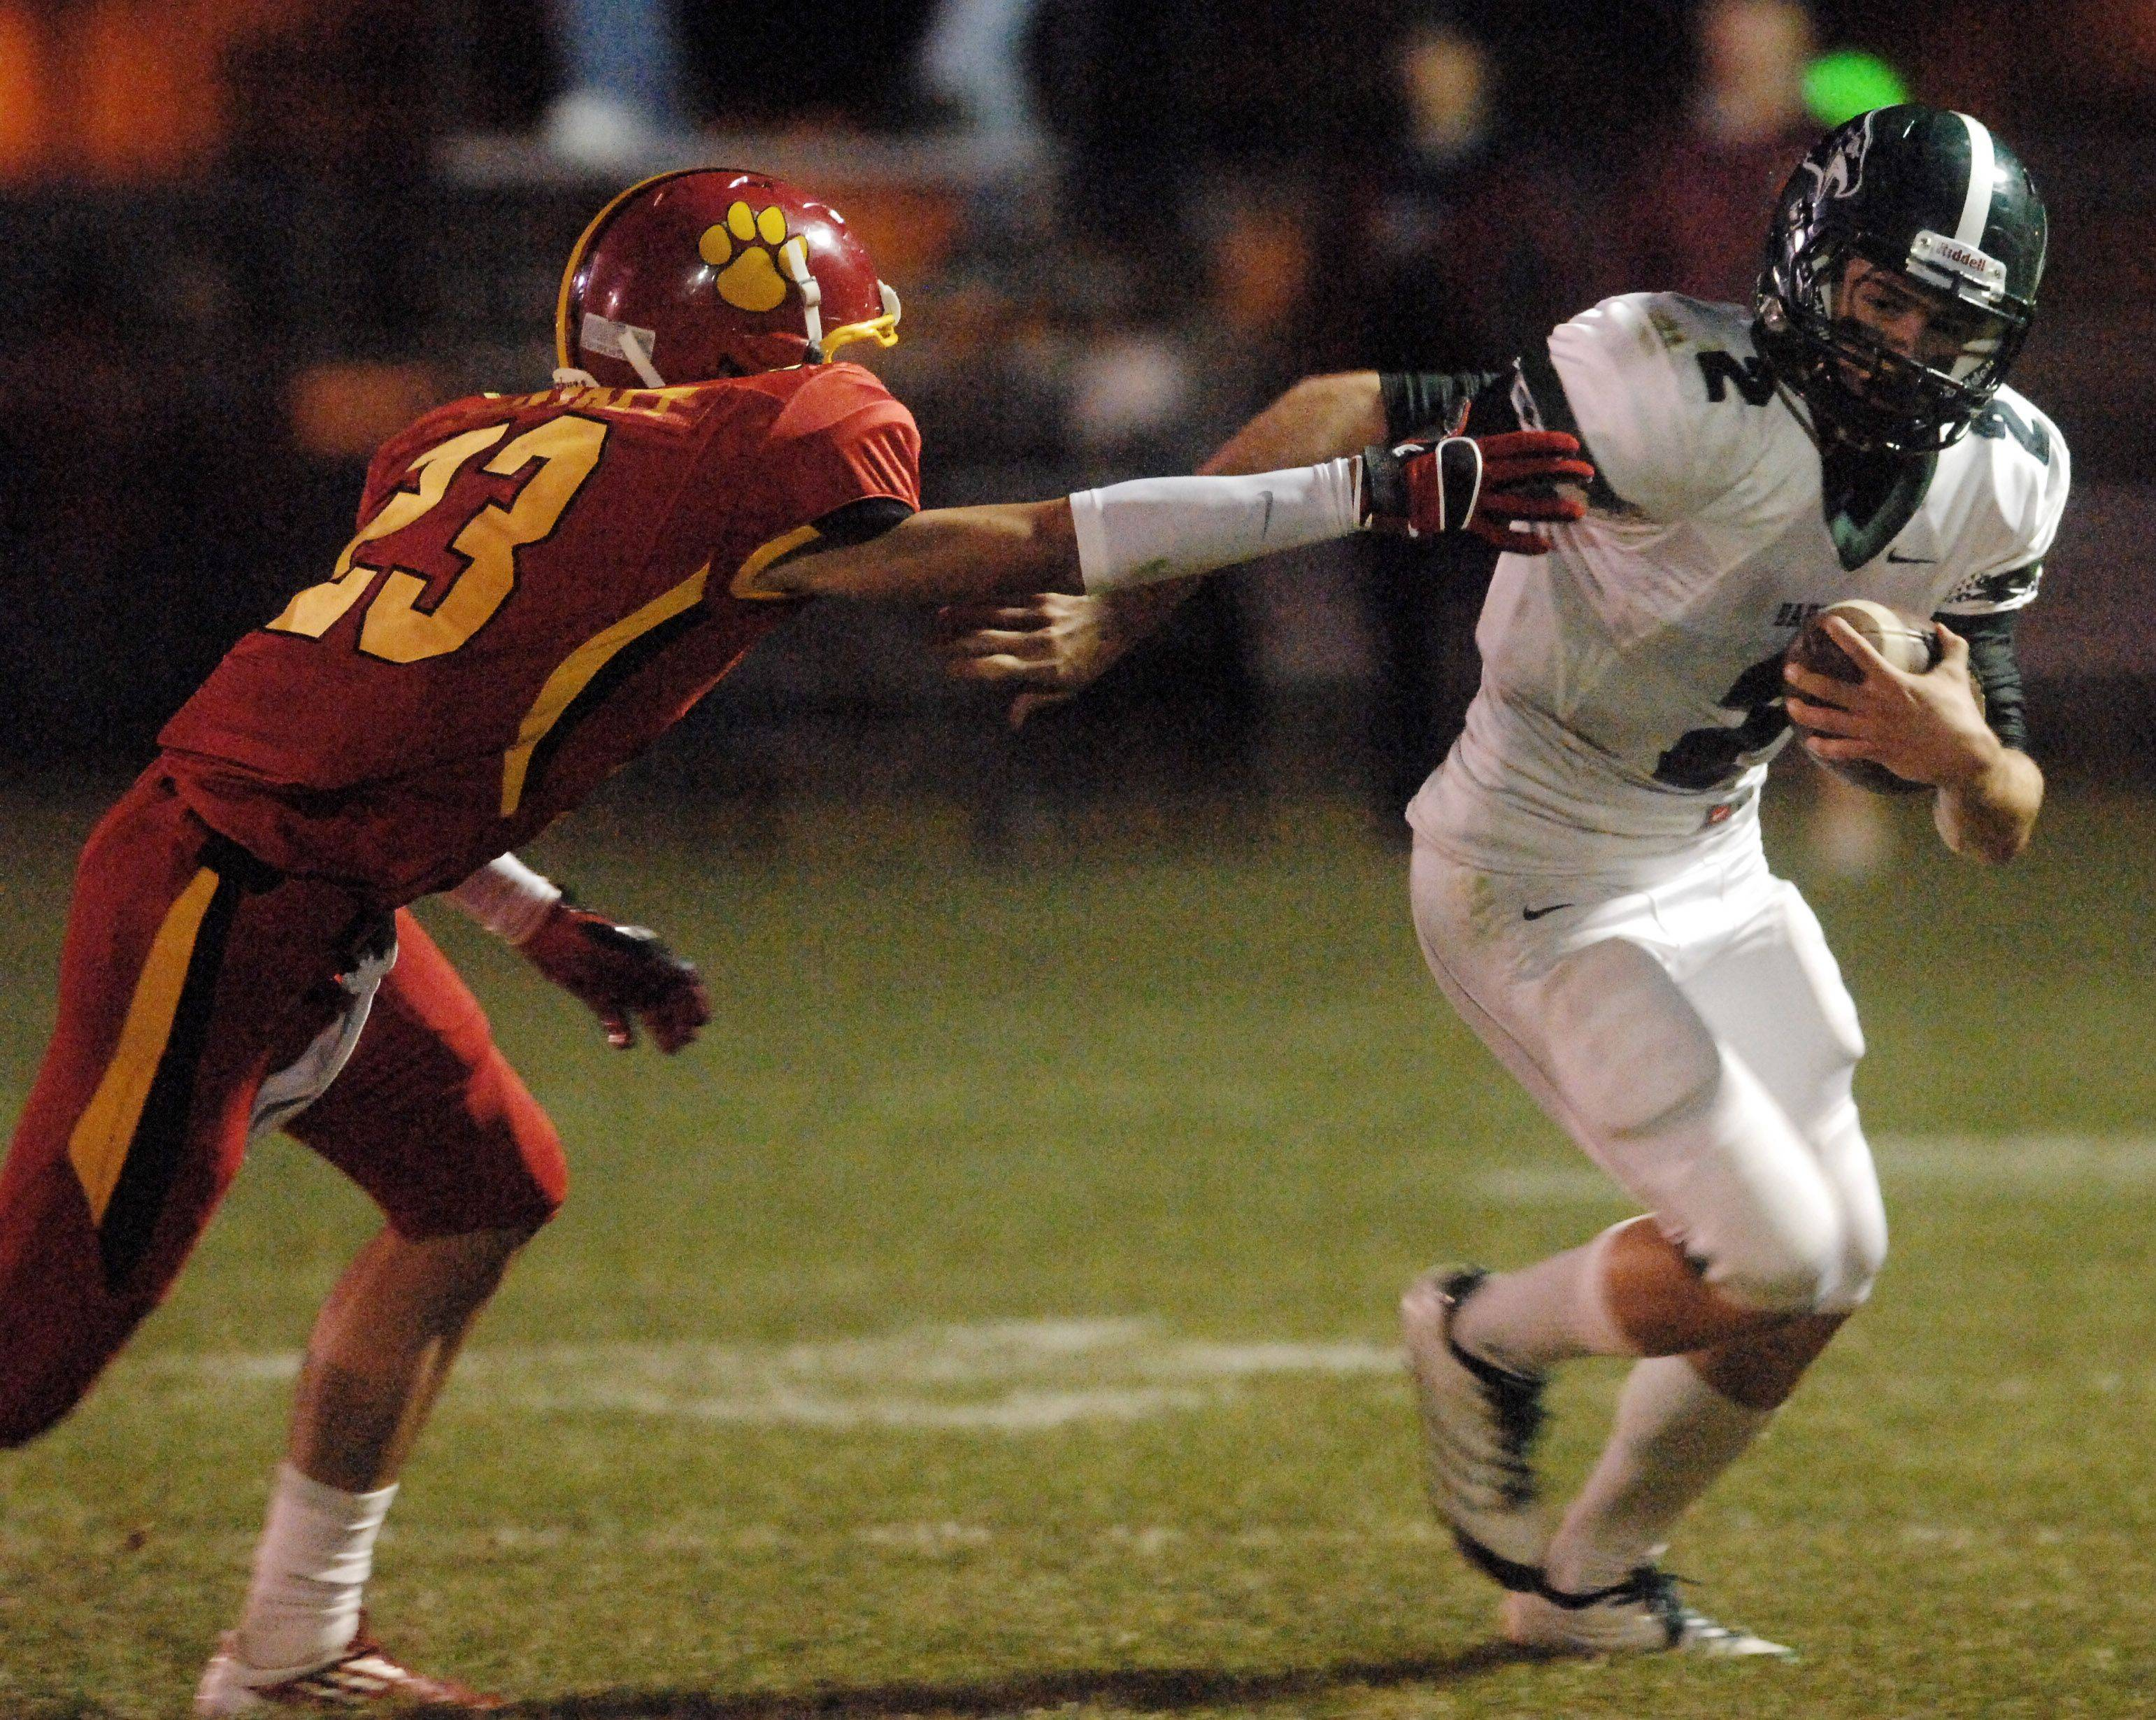 Week 4- Bartlett's Zach Karys breaks for the open field as Batavia's Michael Moffatt gives chase.